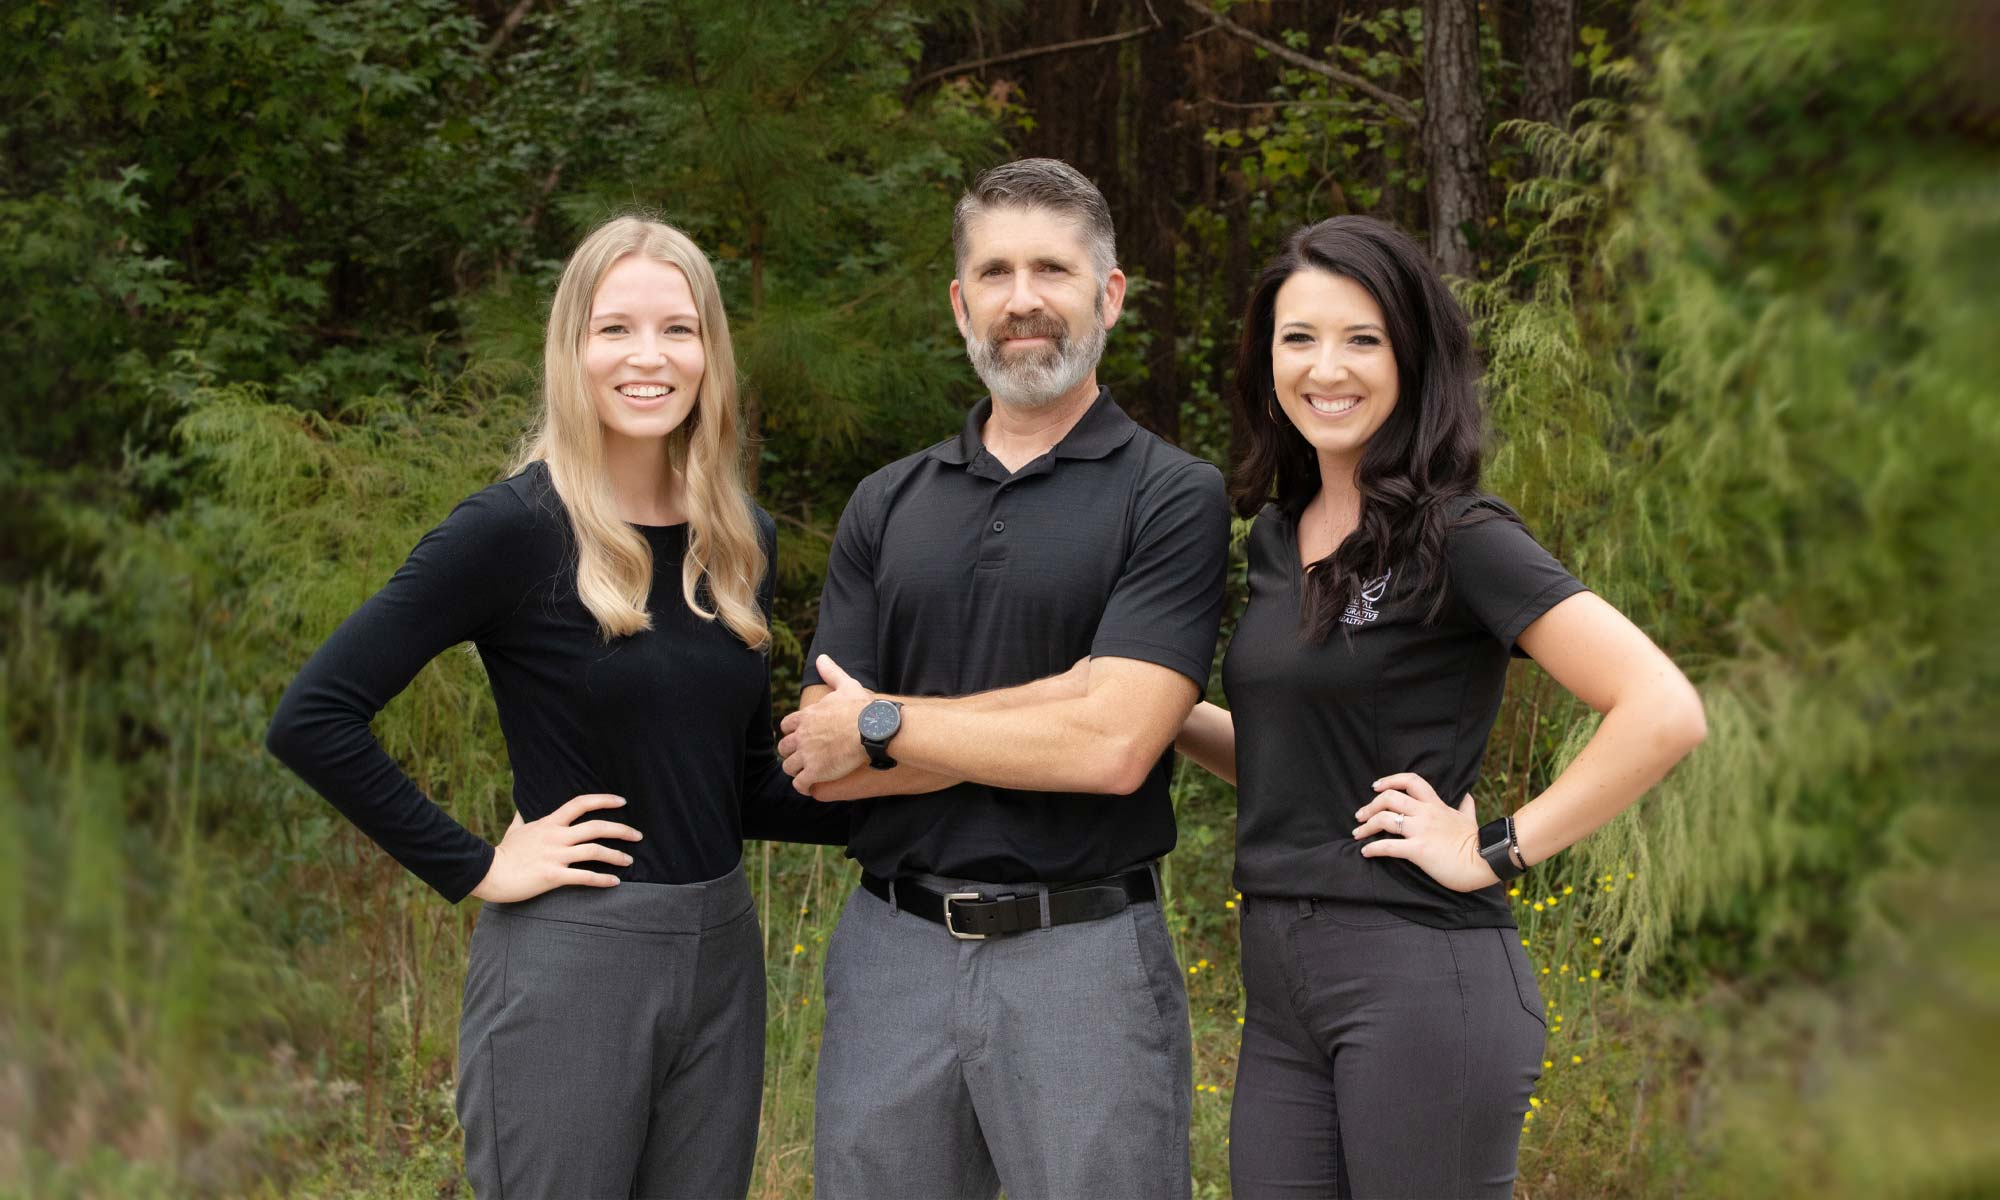 Chiropractic Shallotte NC Coastal Integrative Health Physical Therapy Team